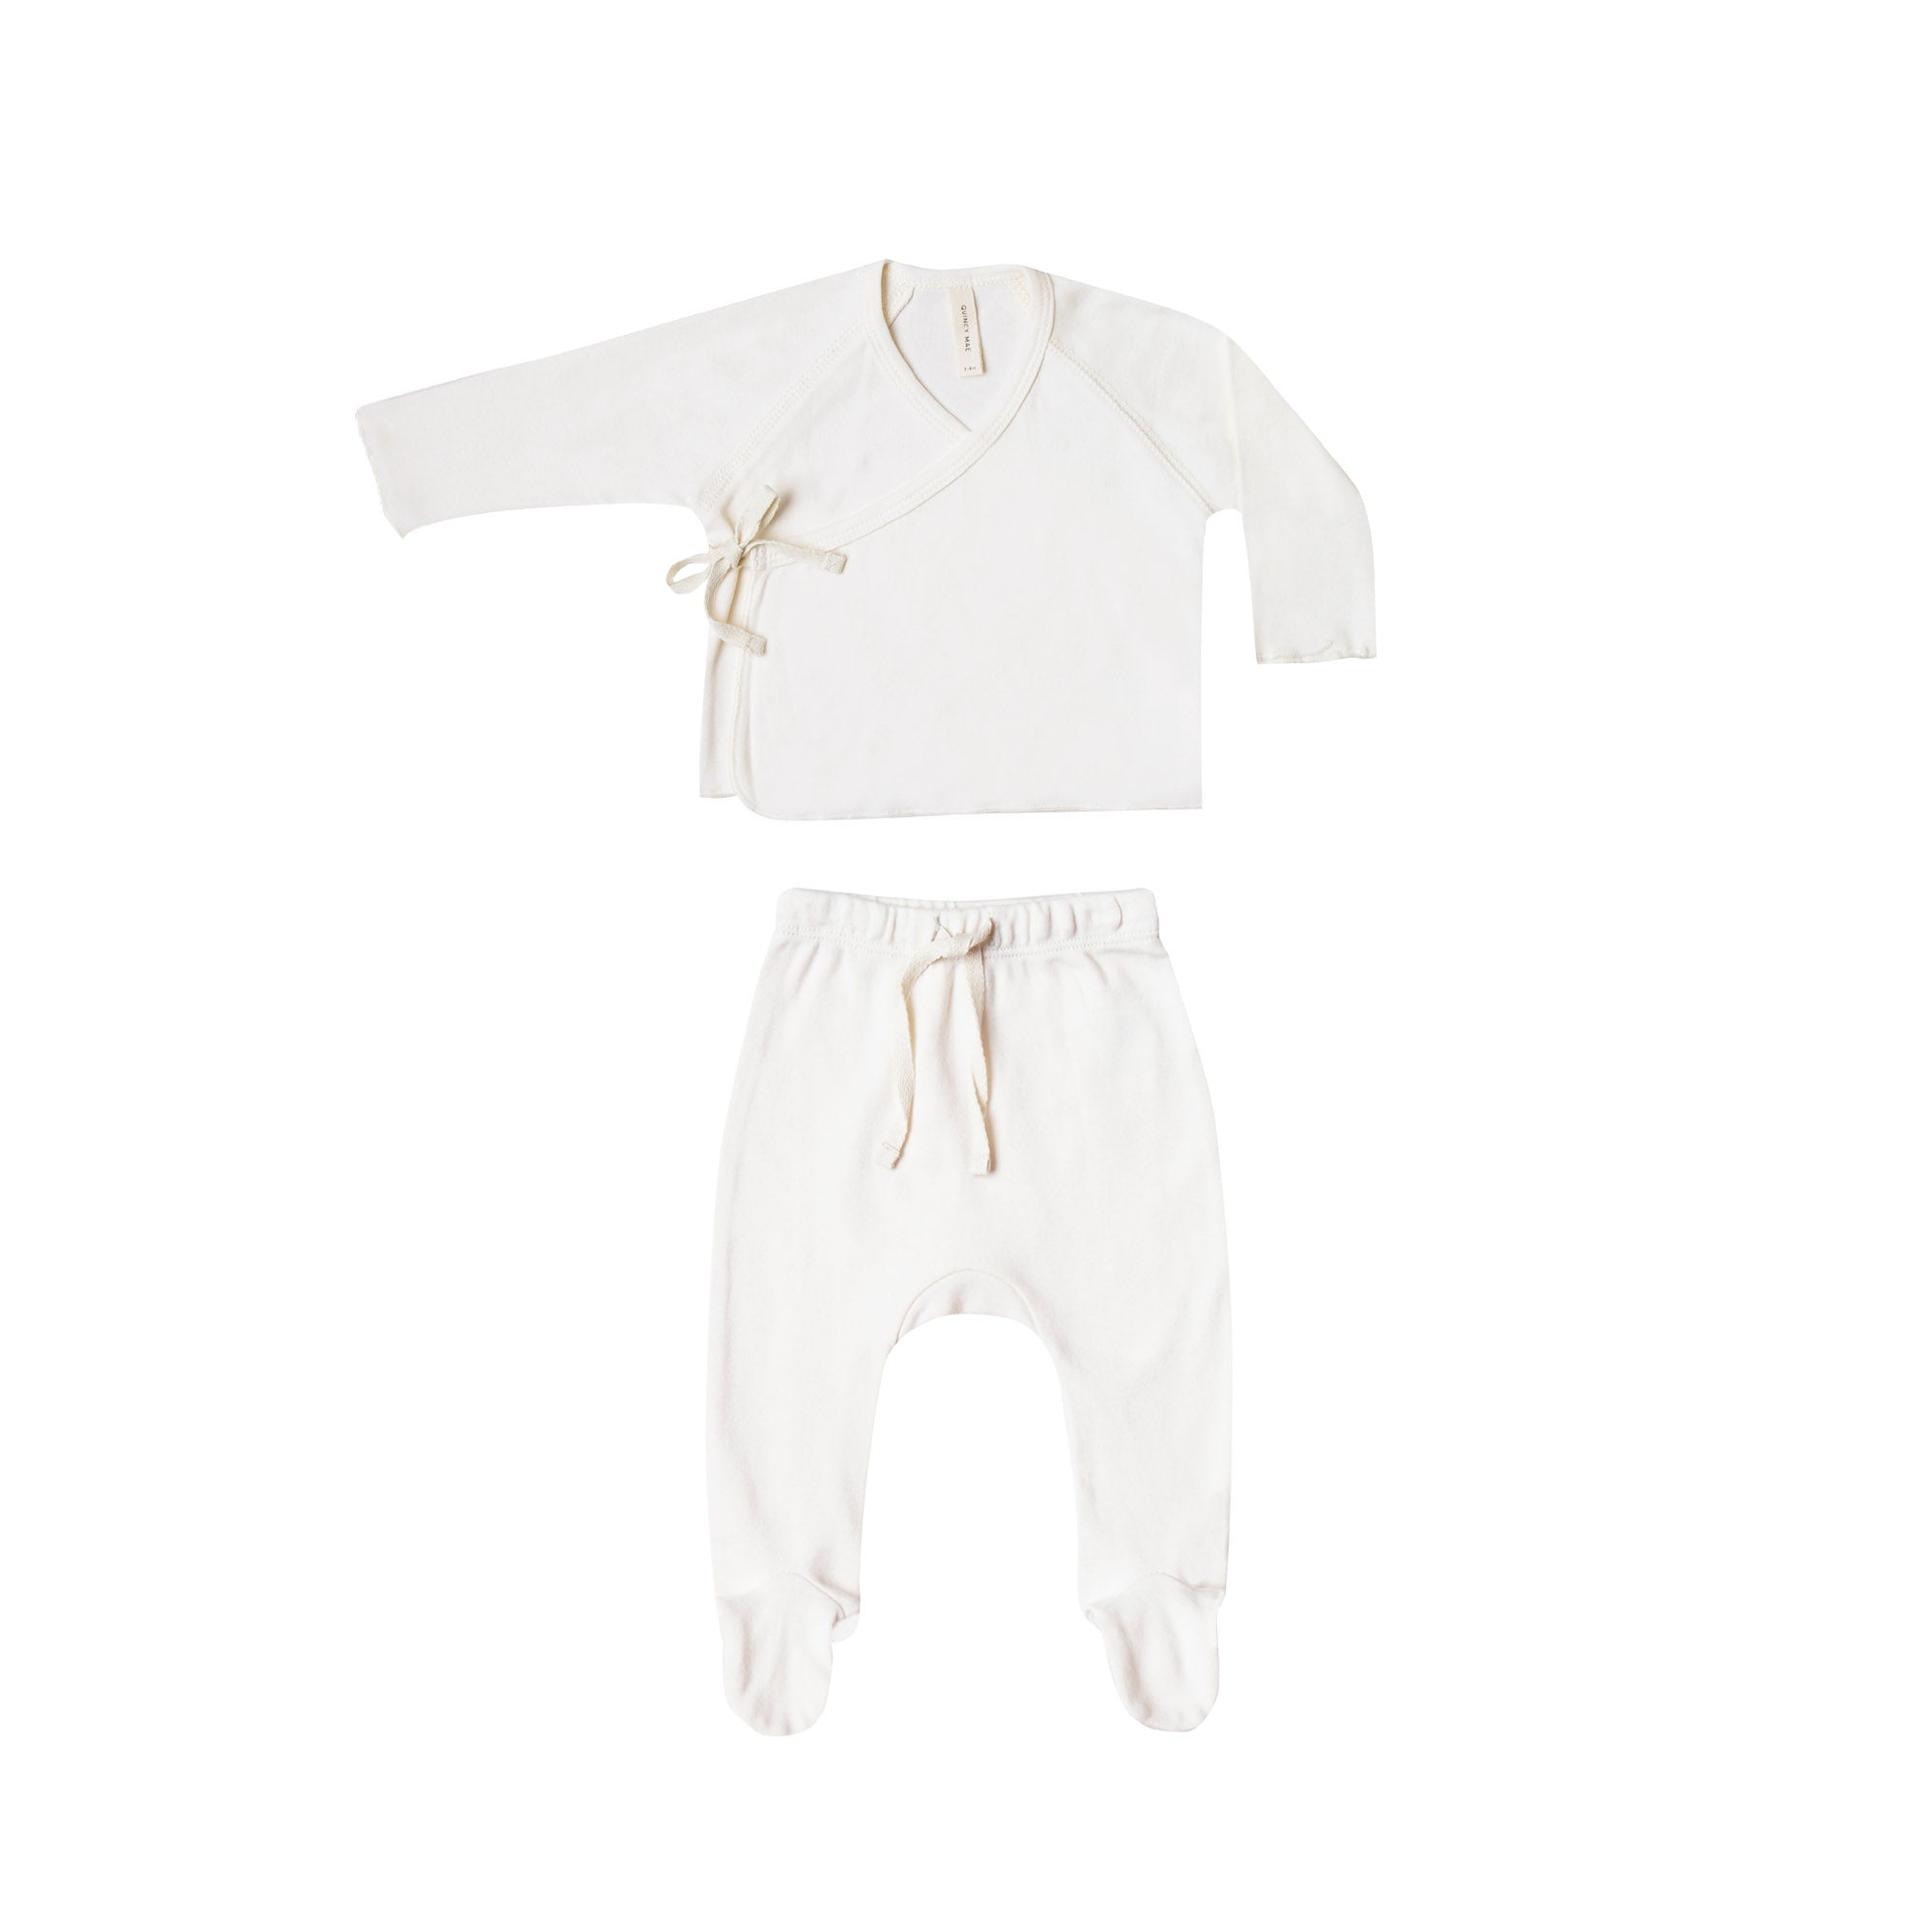 Rylee and Cru (Quincey Mae) 0-3 months white Kimono top footed pants set | Ivory two piece set